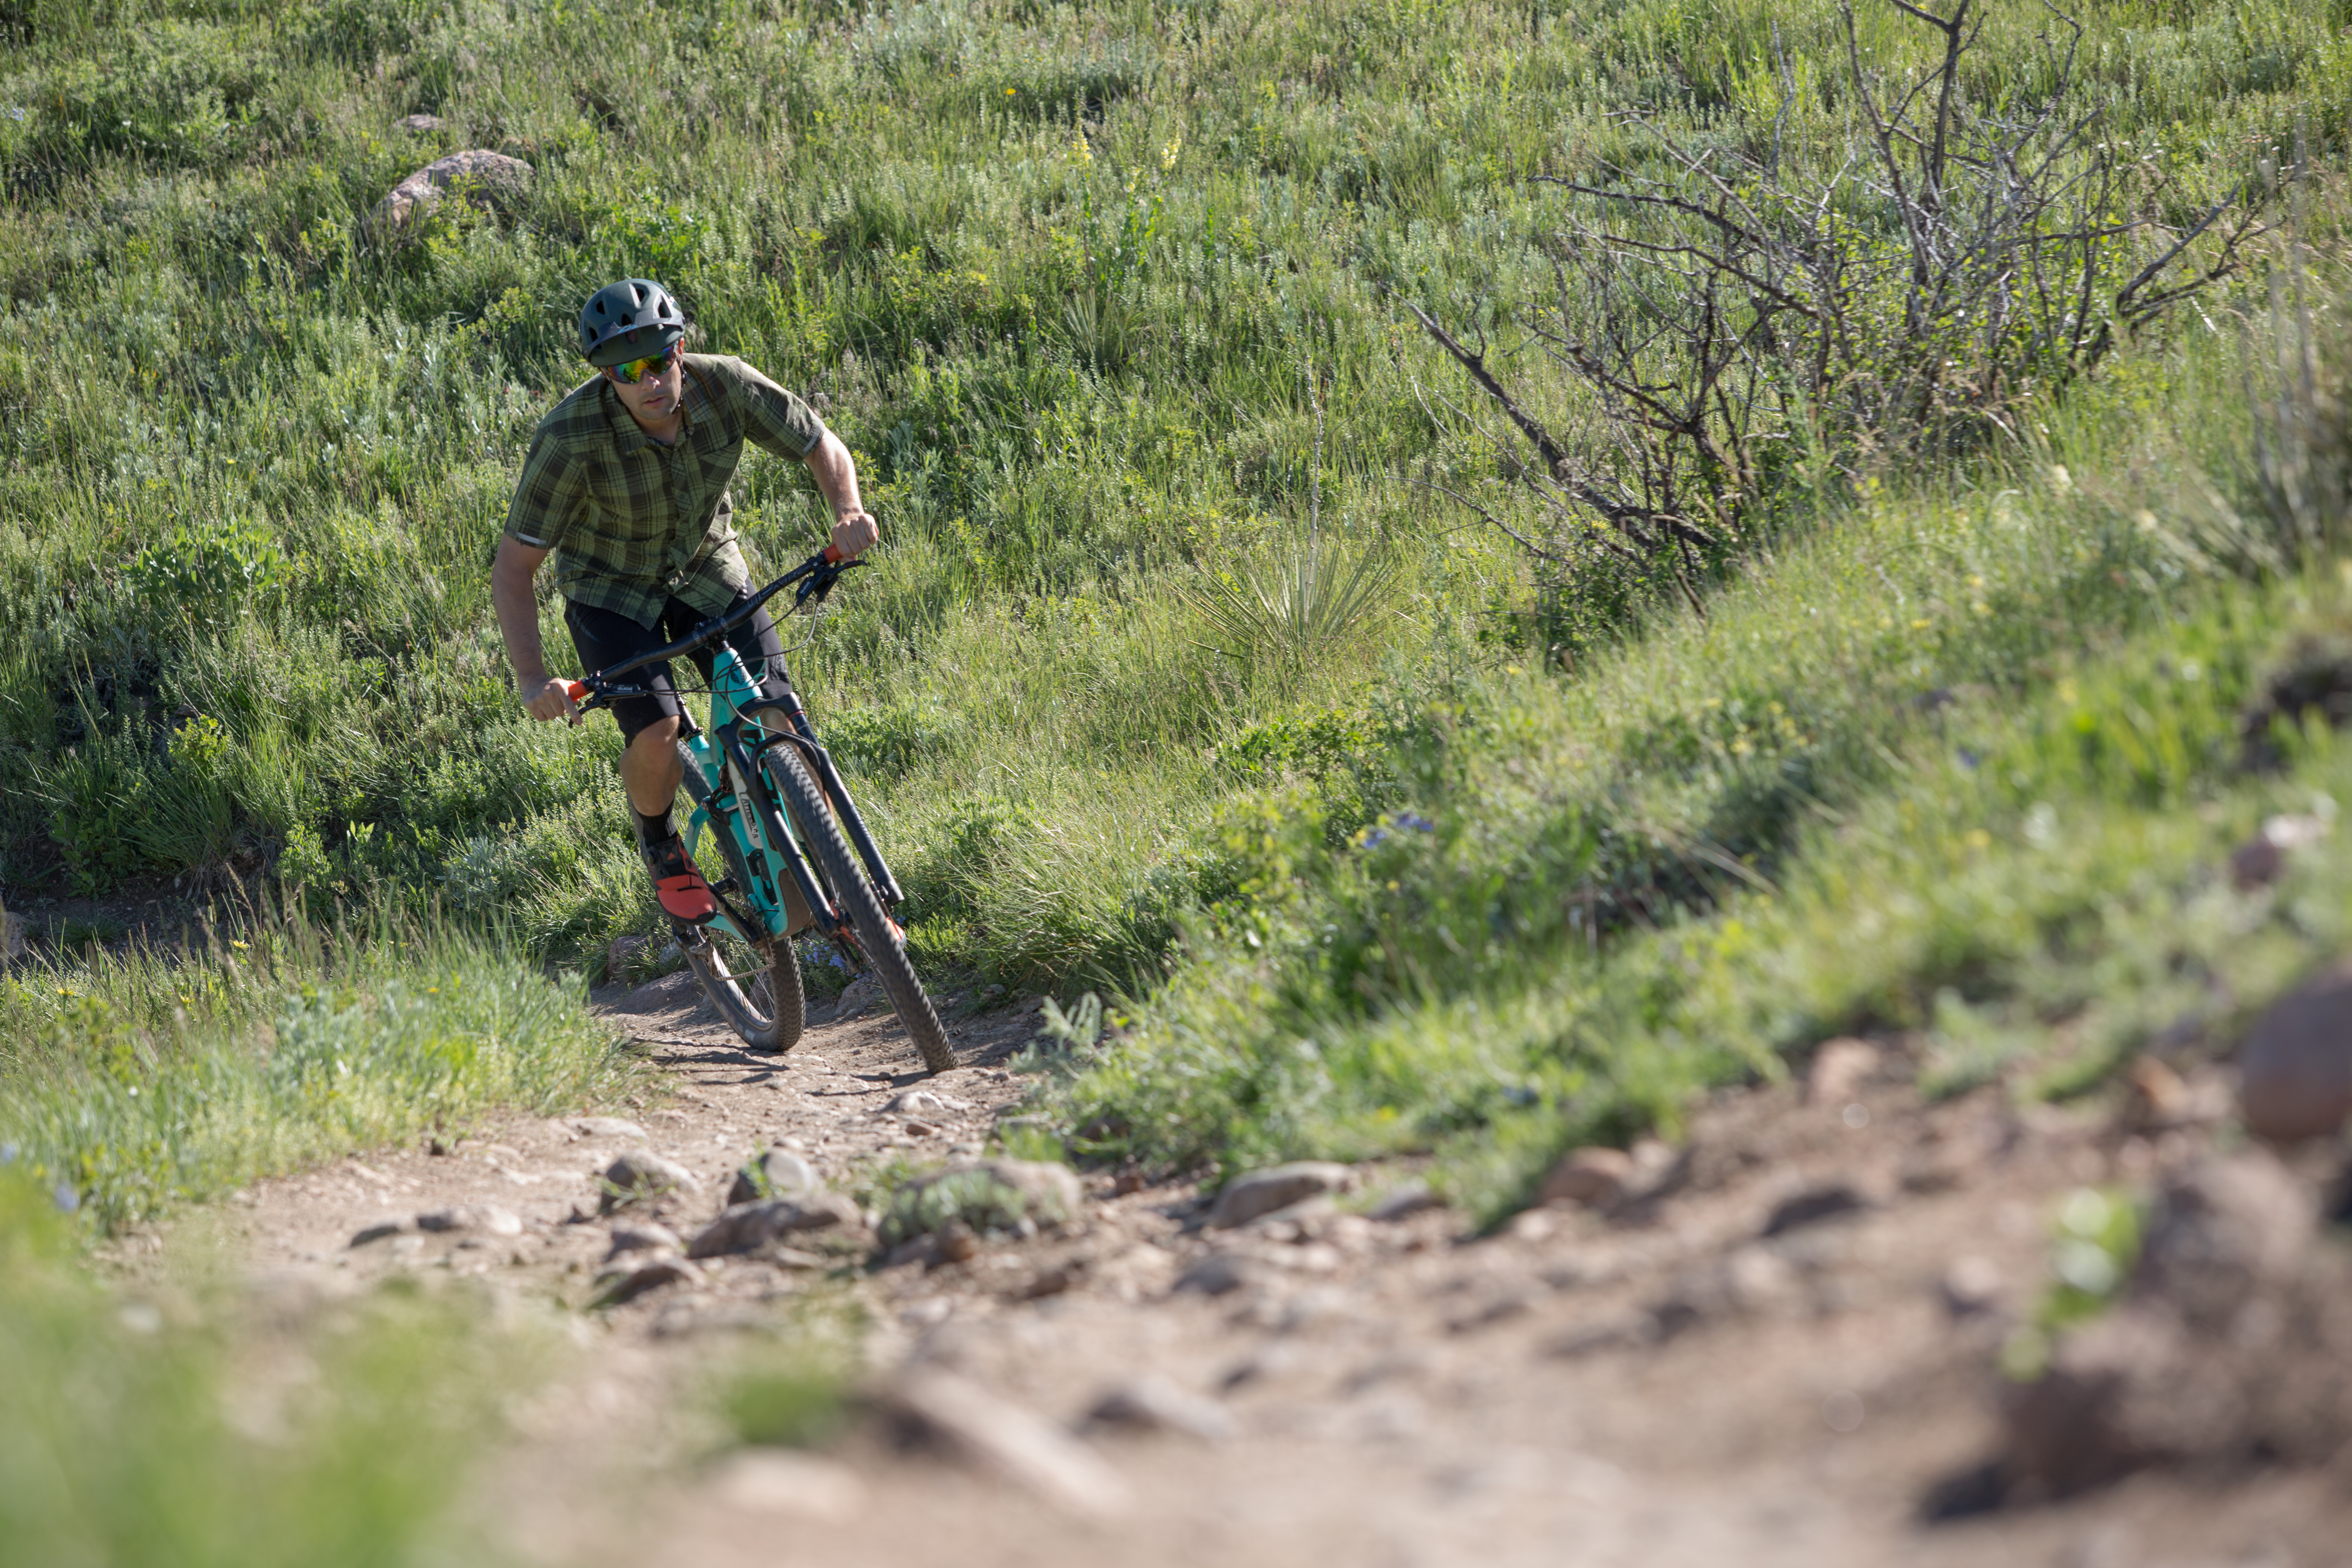 Review: The Salsa Spearfish Defines the New Generation of XC